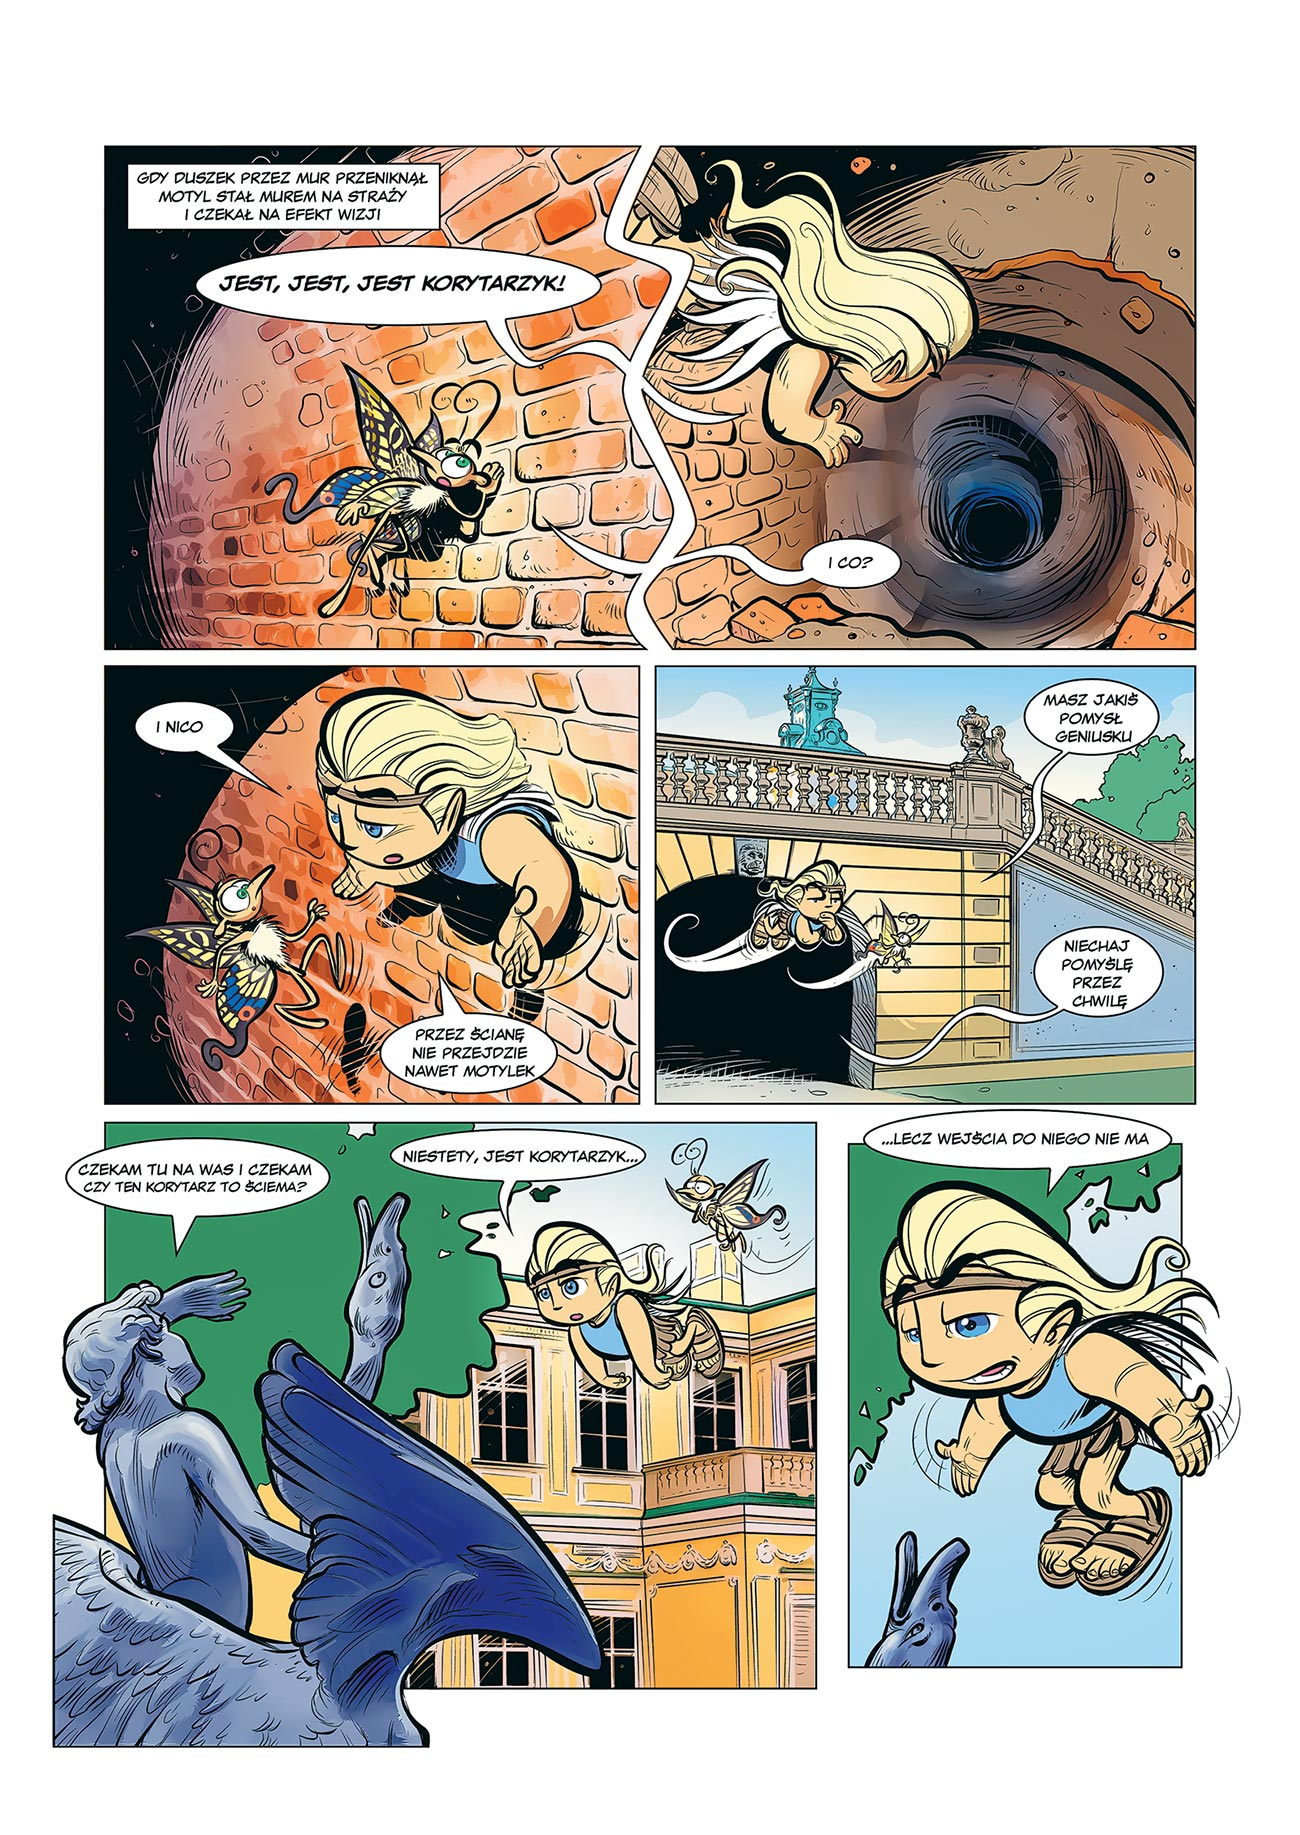 © Sławomir Kiełbus | Między dniem a snem w Wilanowie | Page from the first part of the comic book depicting the history of the Wilanów palace, where the characters are tracking a gang of thieves targeting John III Sobieski's memorabilia. | Story: Ewa Karska. | Published by MAAR Marzena J. Bachan, 2010. | 2010